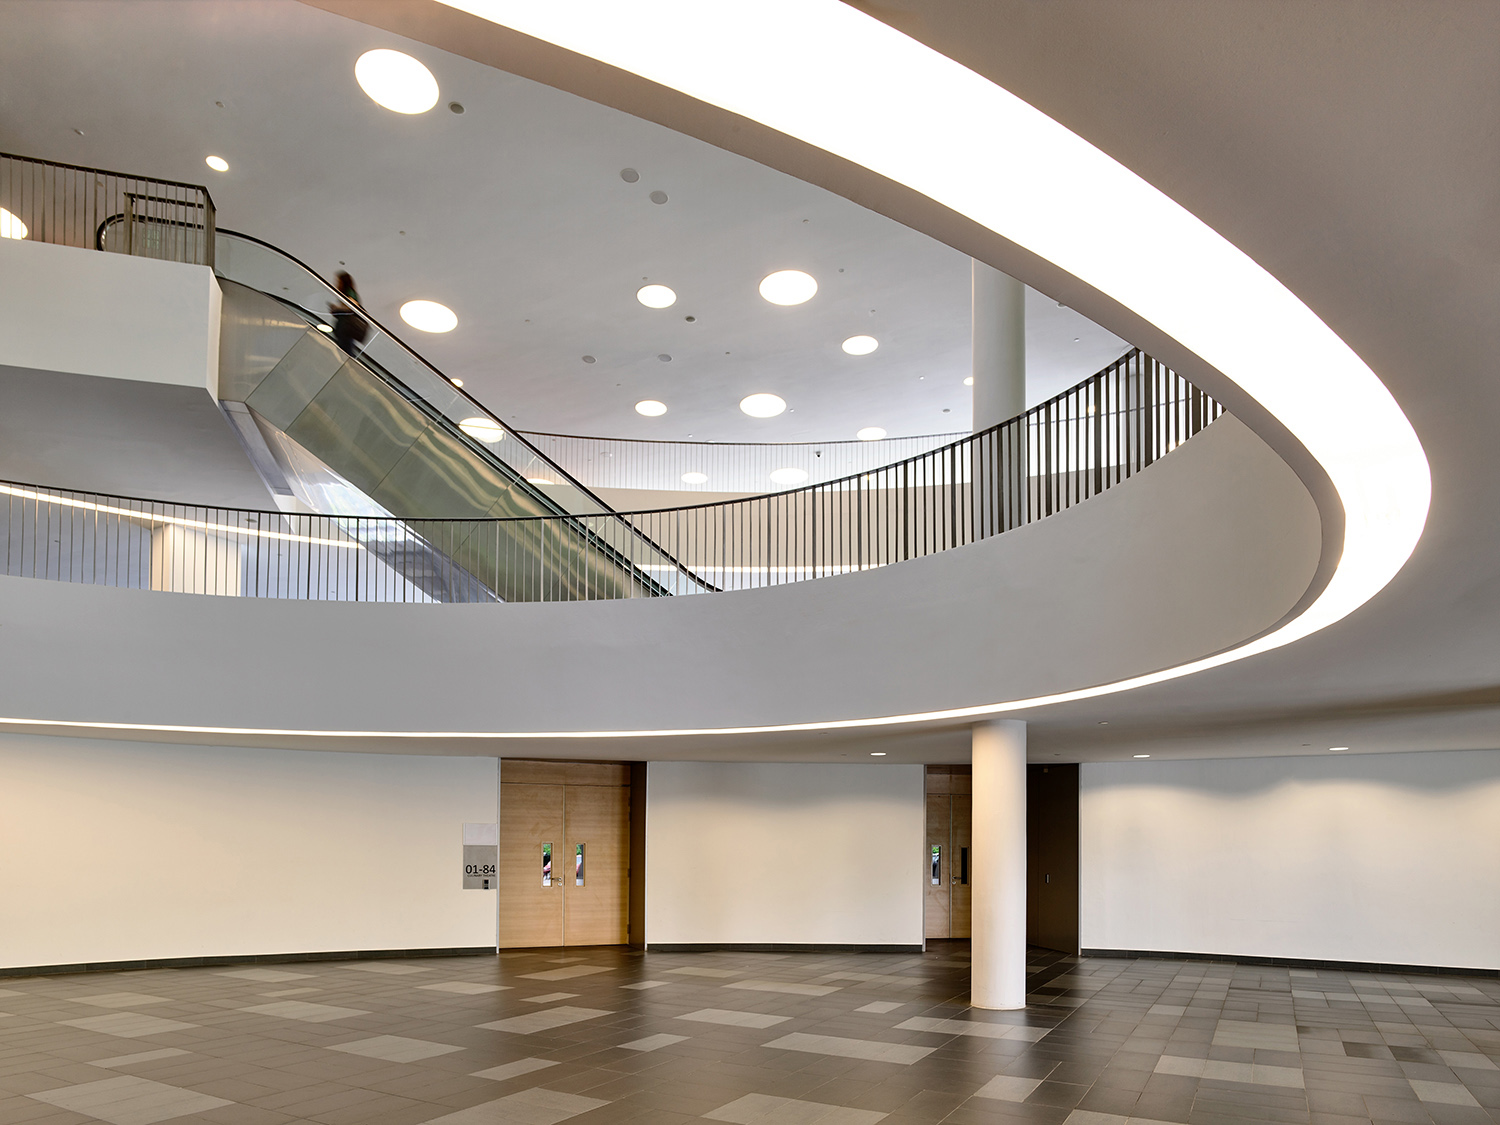 Curved profile of the podium is brought inside into the atrium space